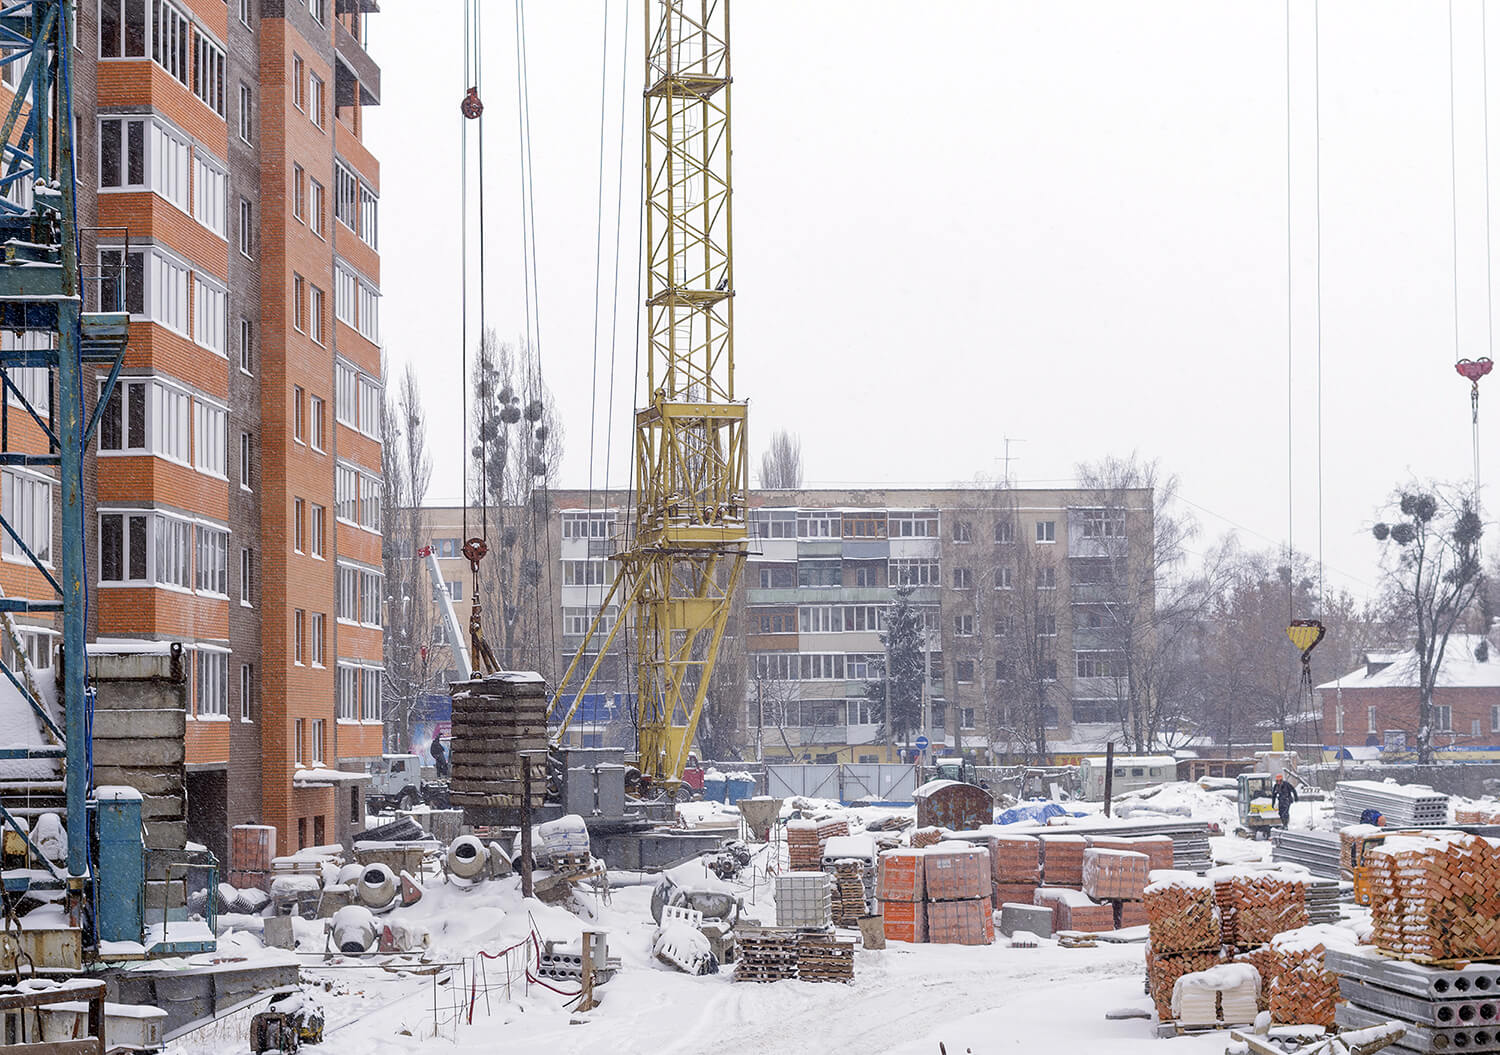 How do Freezing Temperatures Affect Construction?